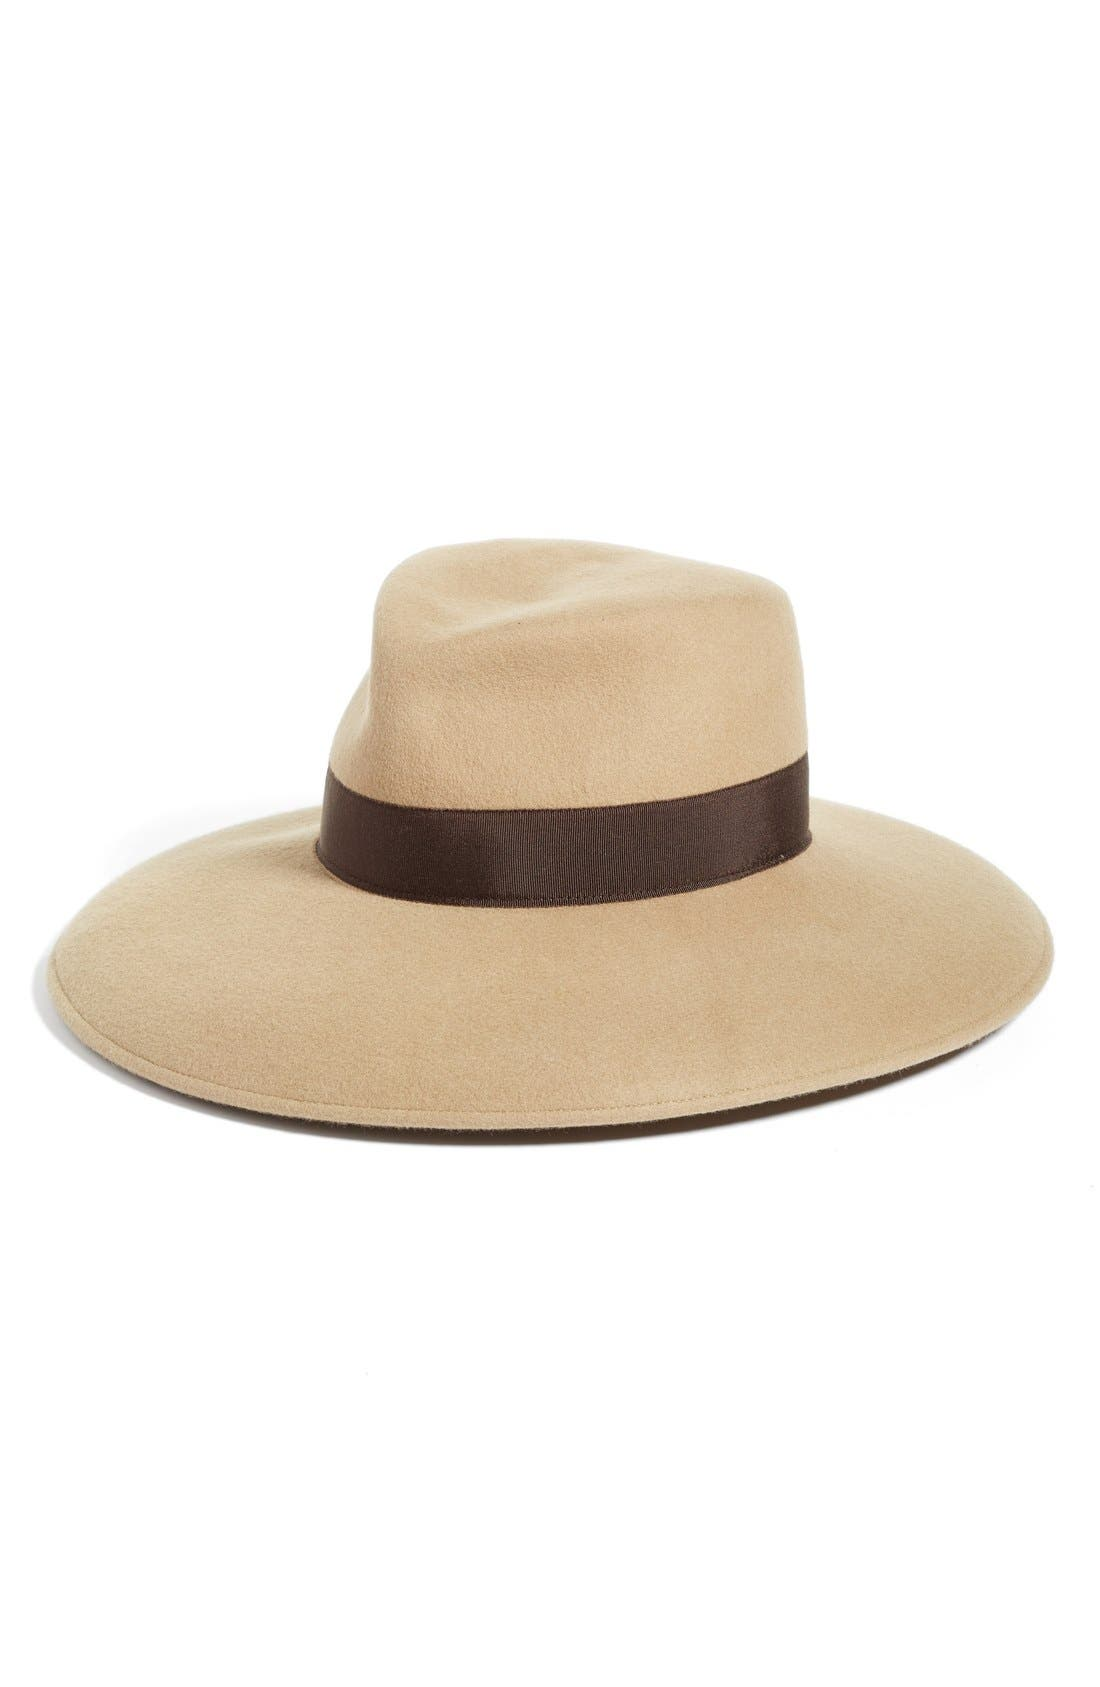 Camille Wool Floppy Hat,                             Main thumbnail 1, color,                             Camel/ Brown